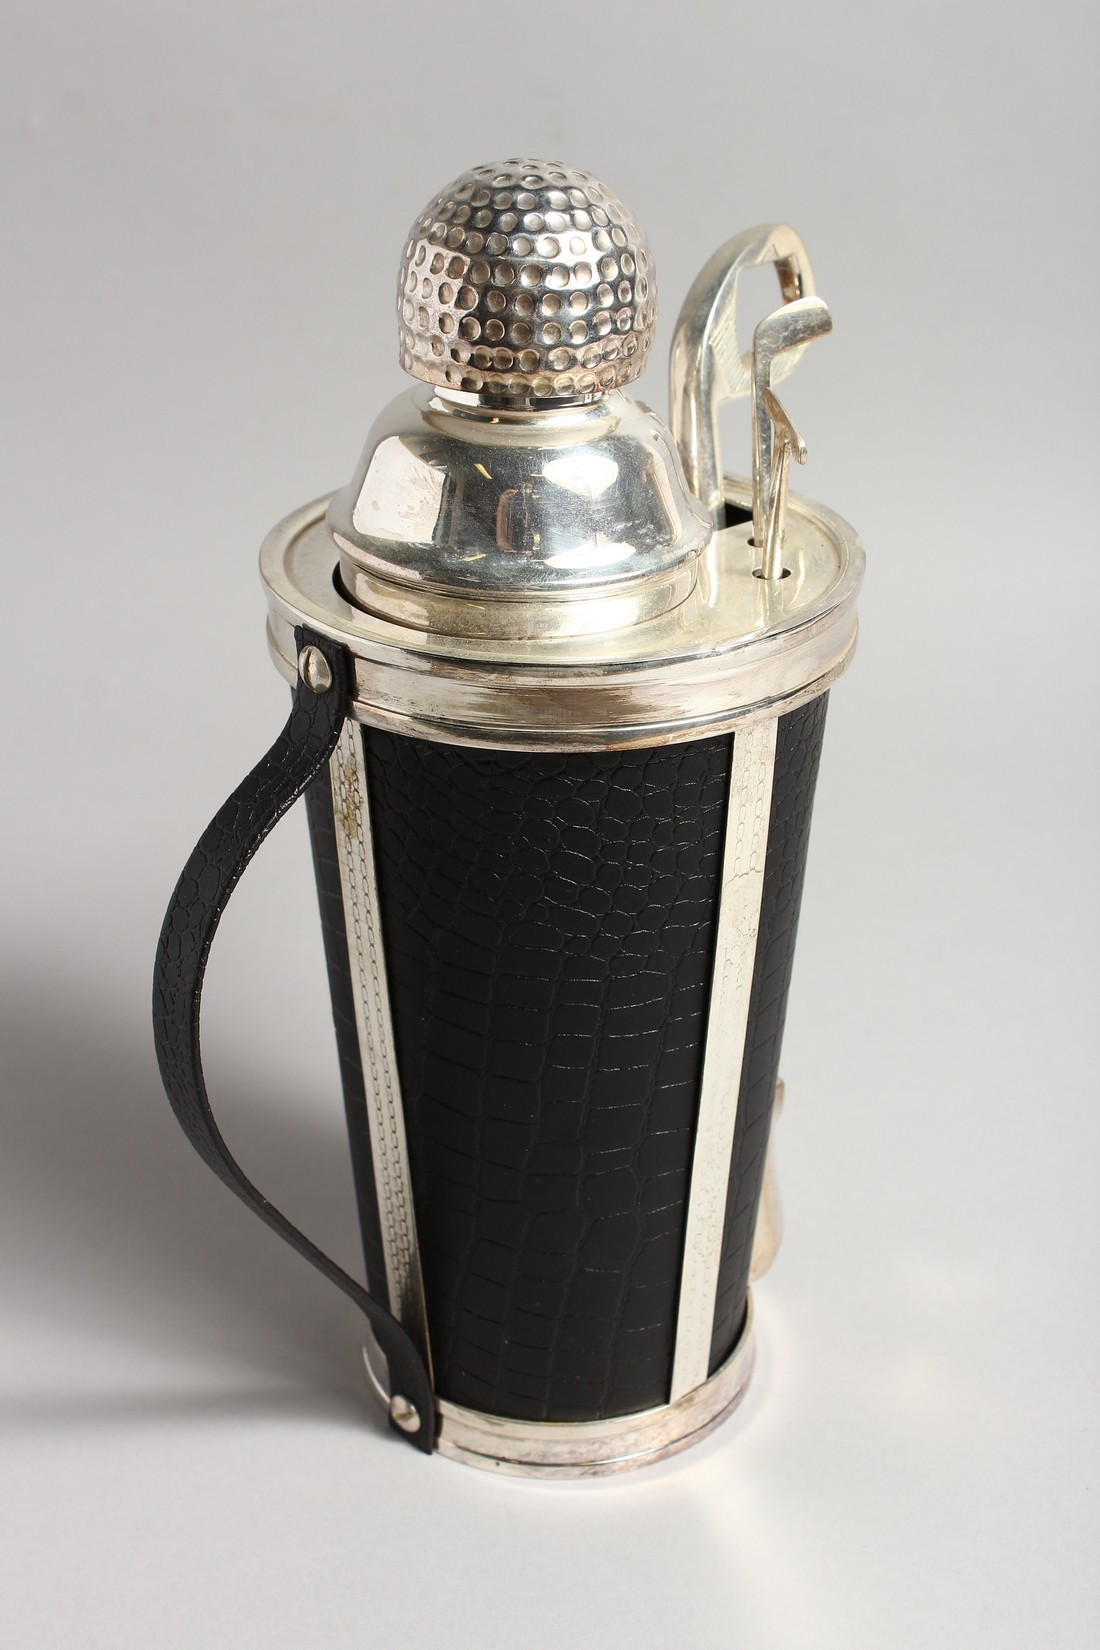 A SILVER PLATE AND LEATHER COVERED GOLF BAG COCKTAIL SHAKER with carrying handle. 11.5ins high. - Image 2 of 2